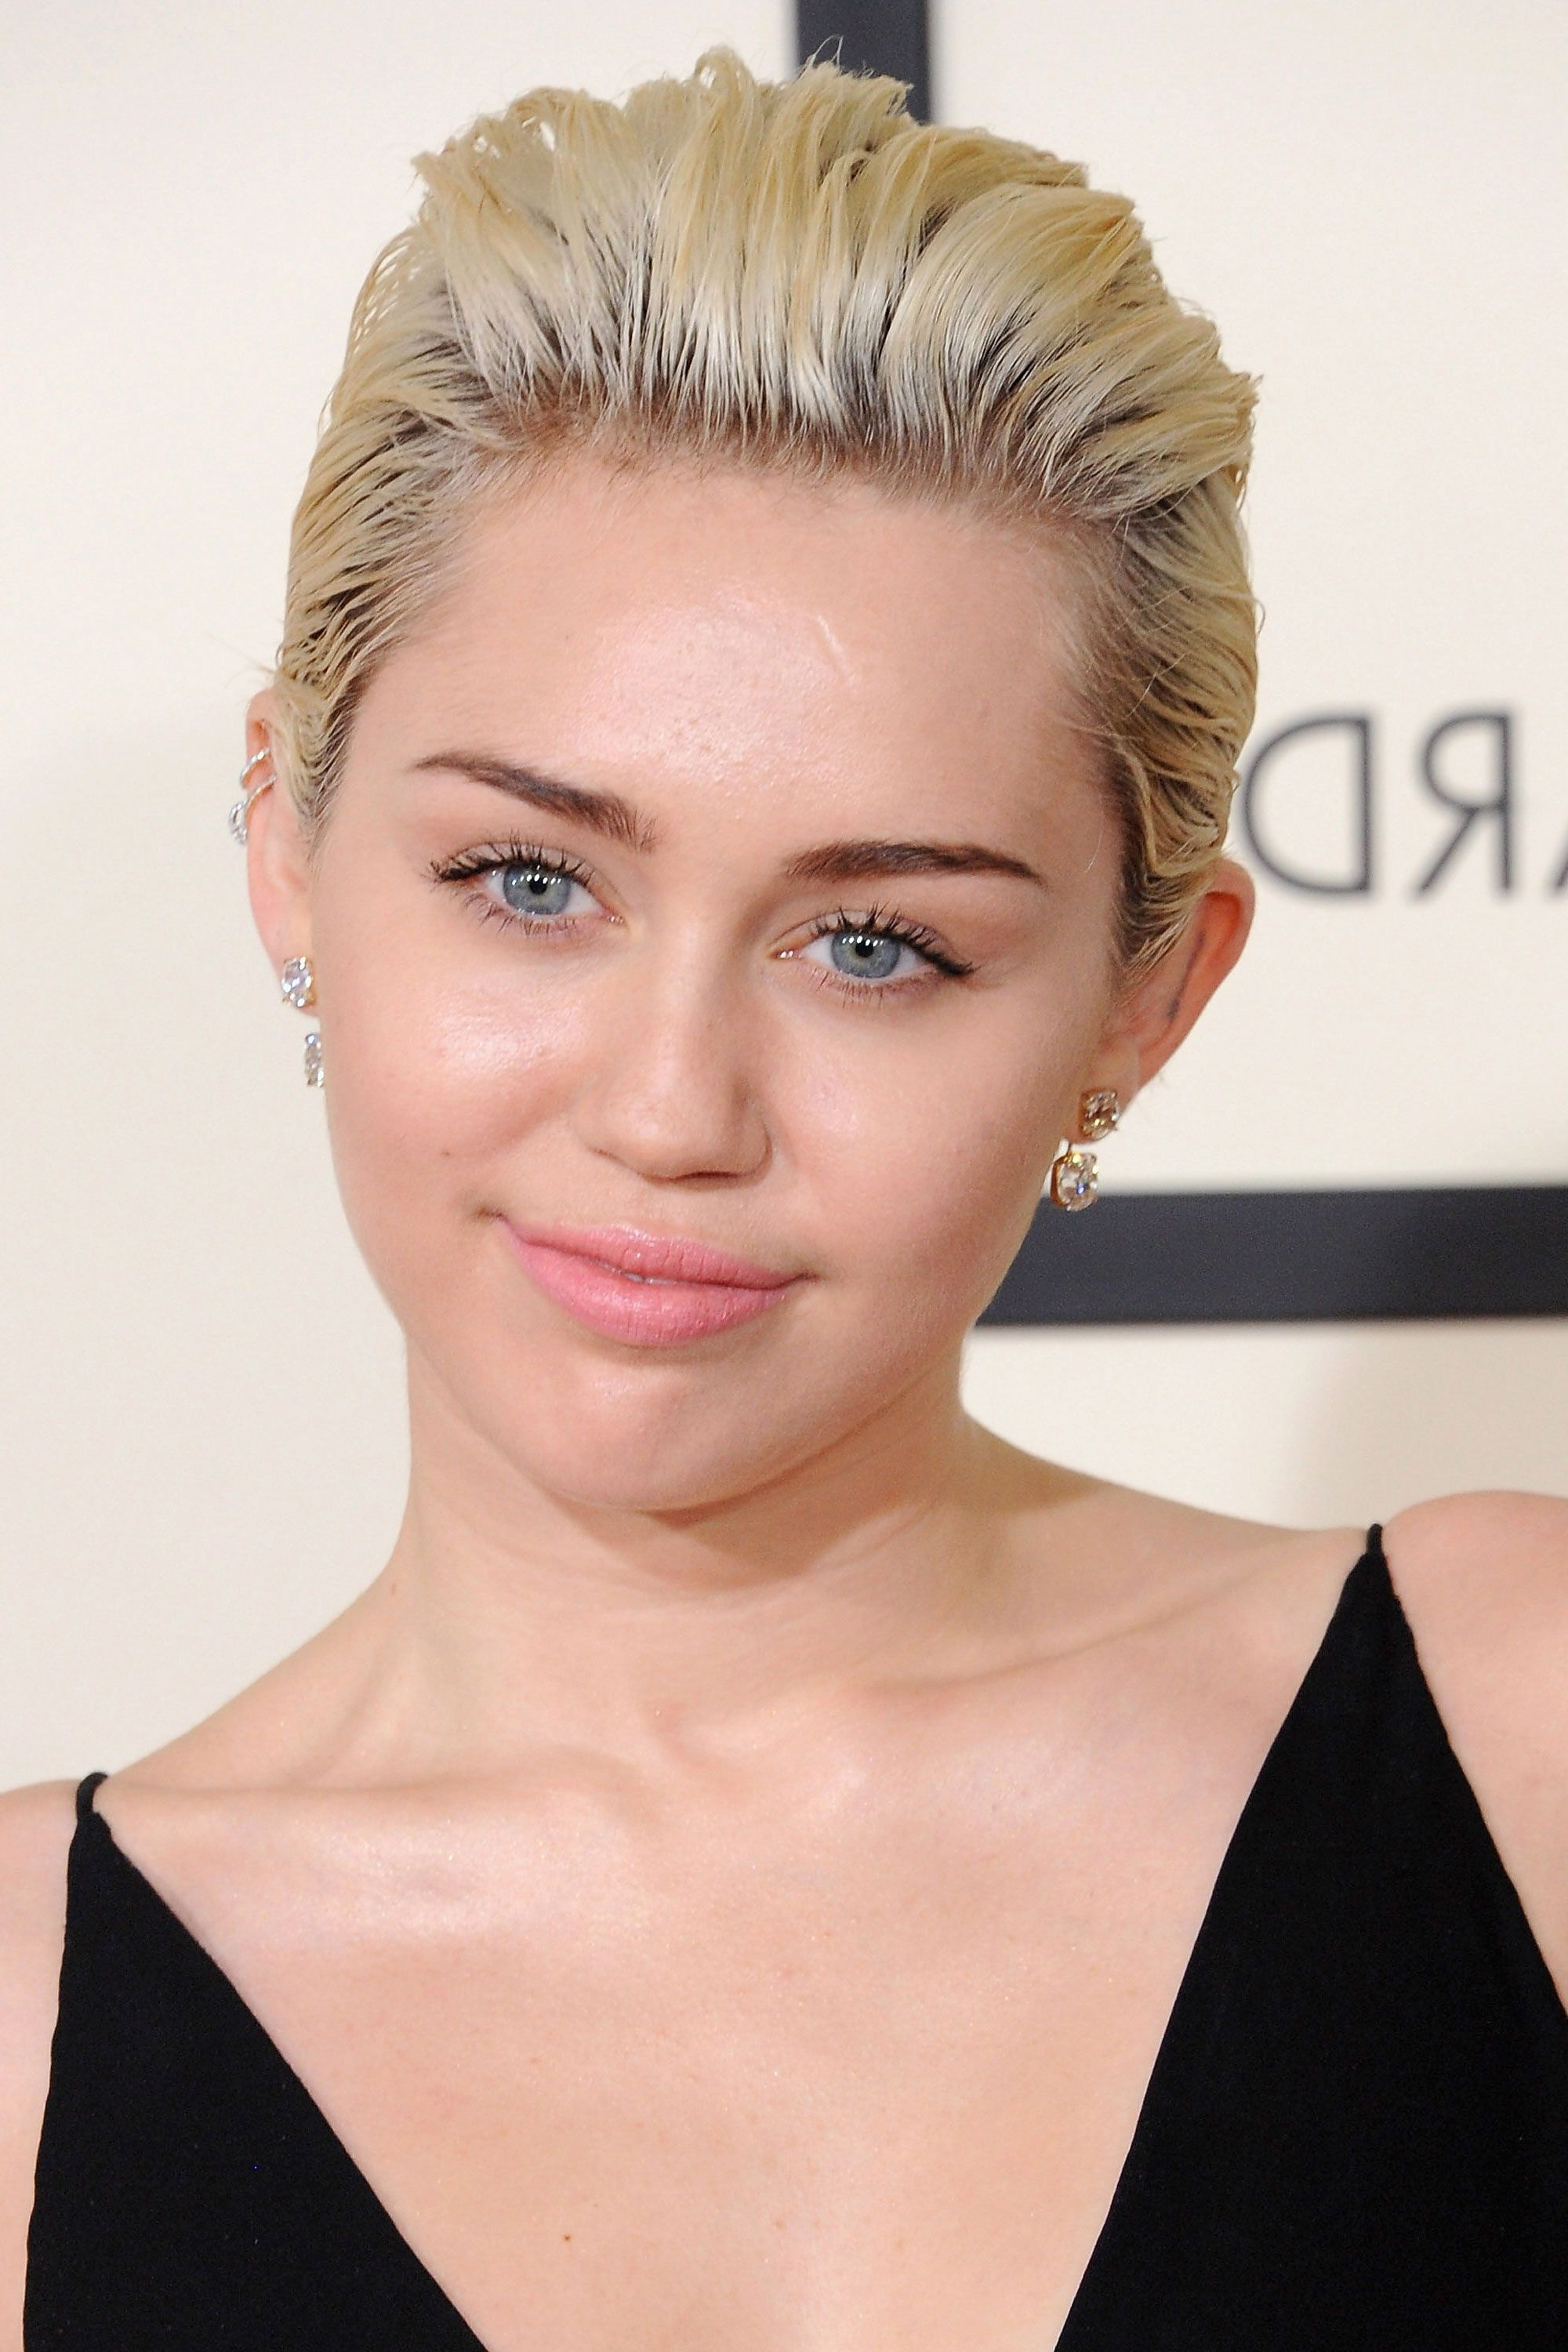 87 Cute Short Hairstyles & Haircuts – How To Style Short Hair In Miley Cyrus Short Hairstyles (Gallery 11 of 25)